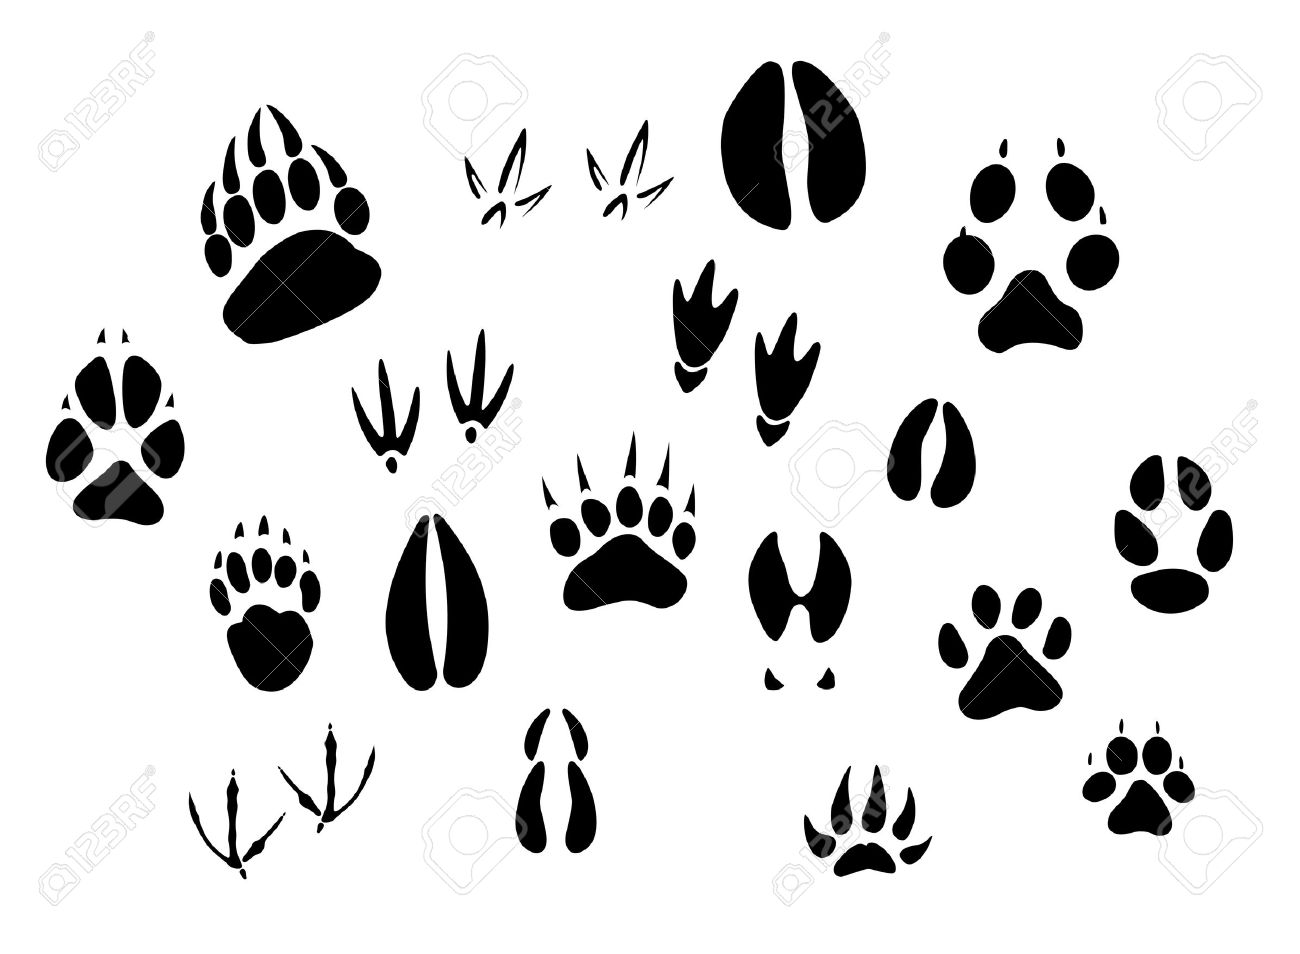 Free Track Cliparts Silhouette Download Free Clip Art